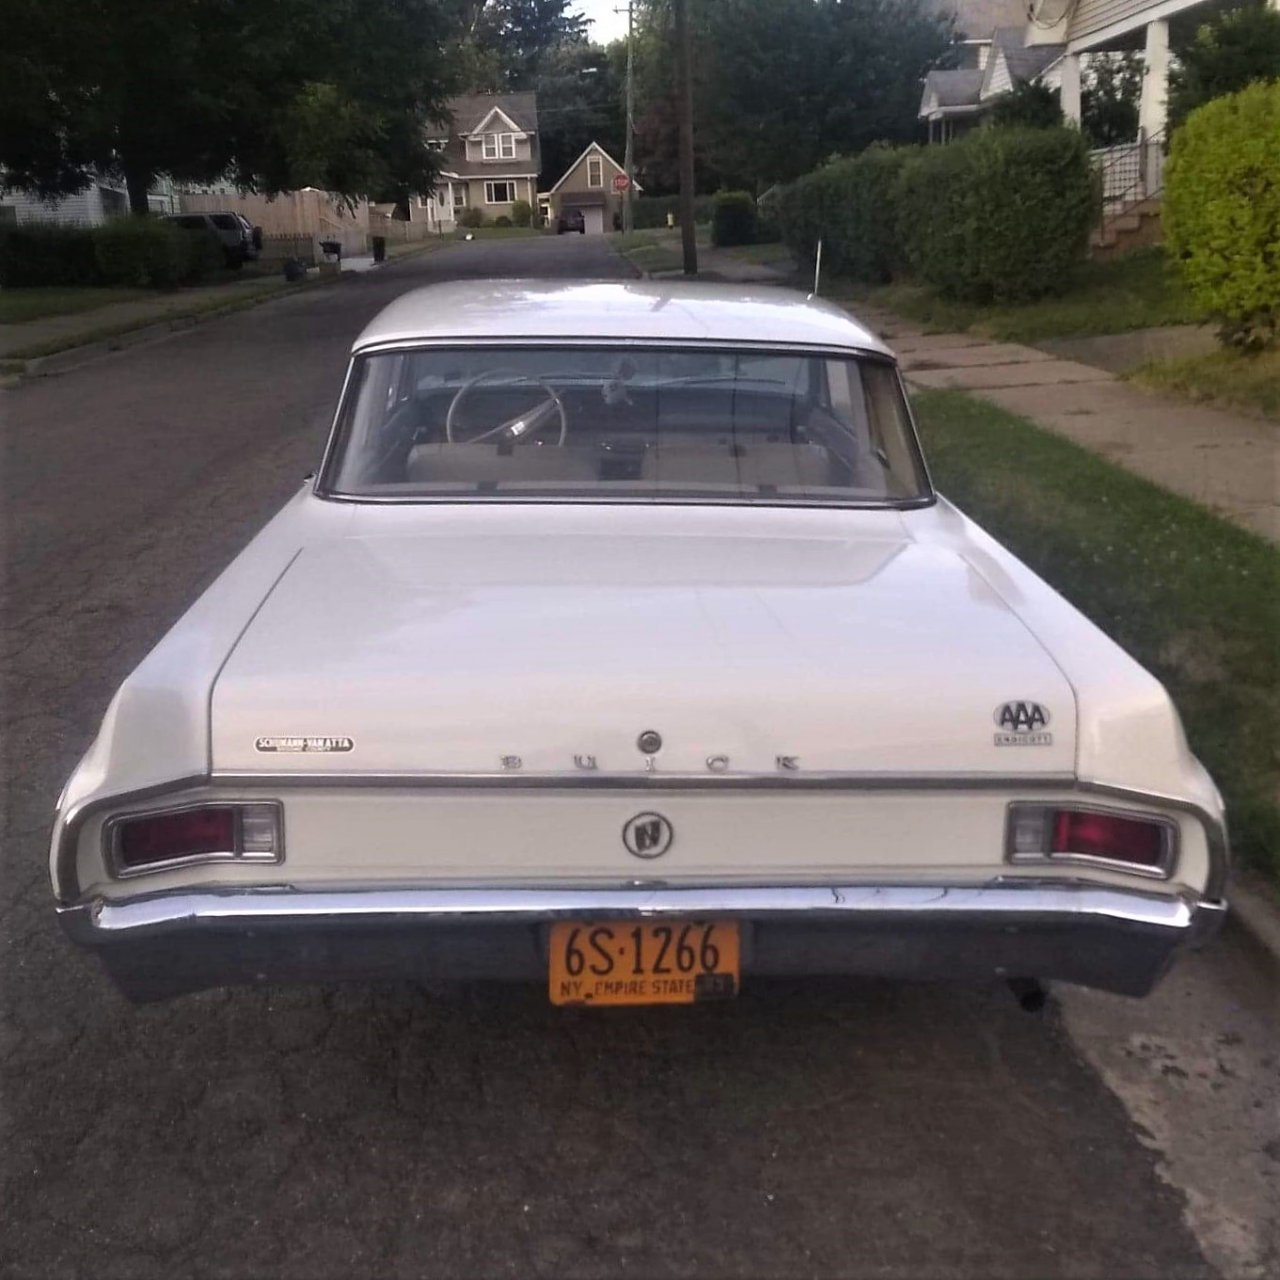 buick special, My Classic Car: Grandma's well-loved '63 Buick Special, ClassicCars.com Journal